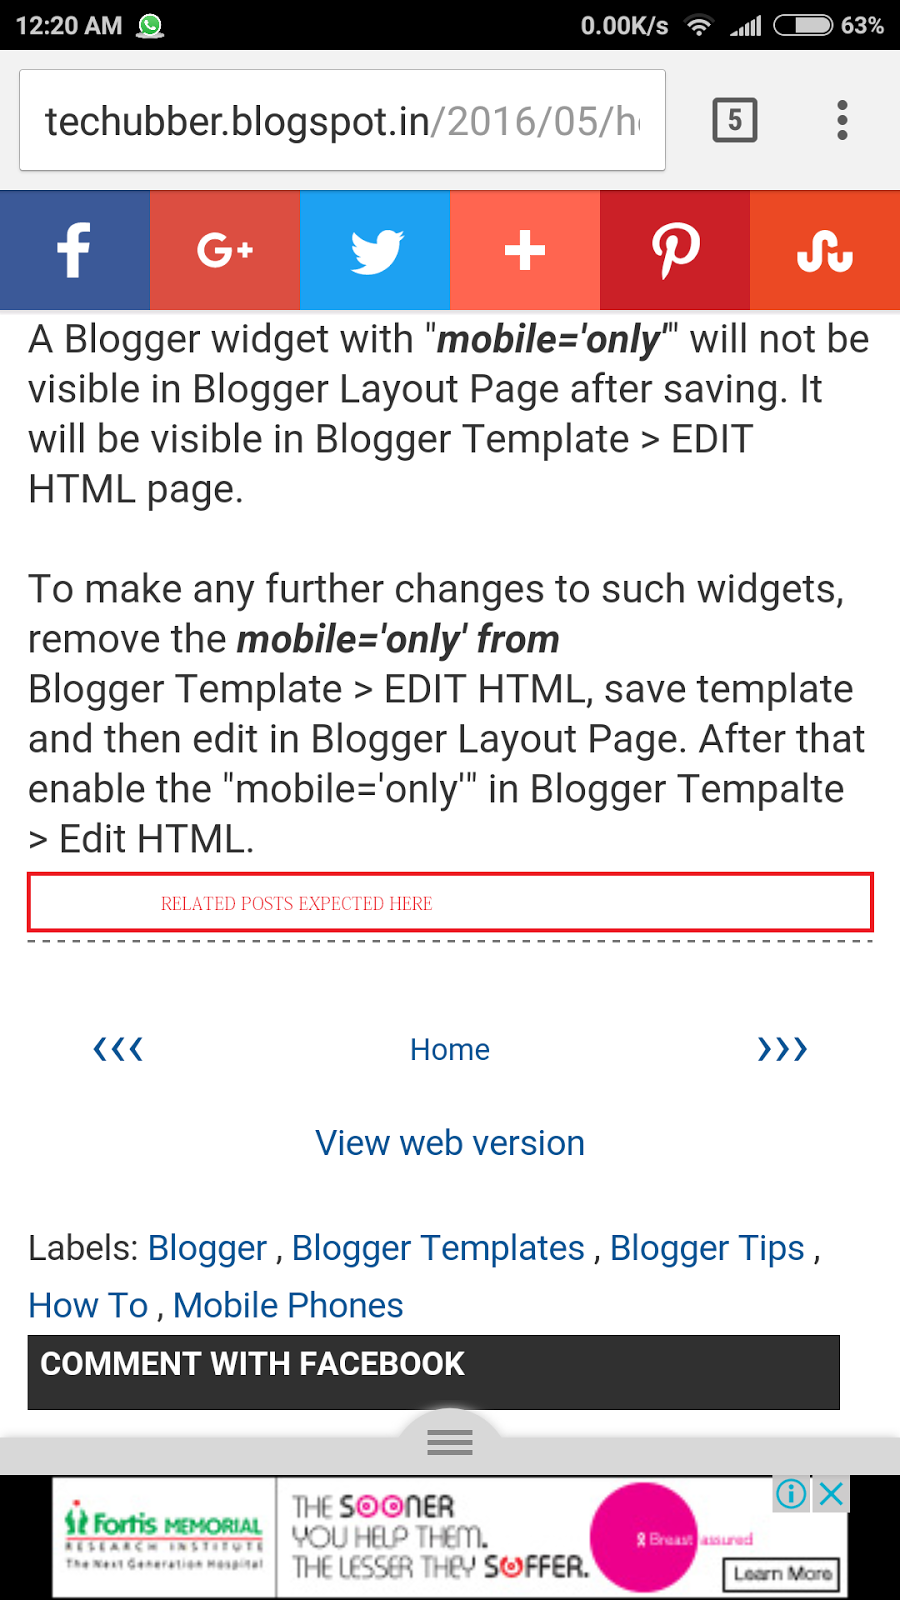 Gmail theme not appearing - How To Fix Blogger Related Post Or Link Within Widget Not Appearing On Mobile Devices